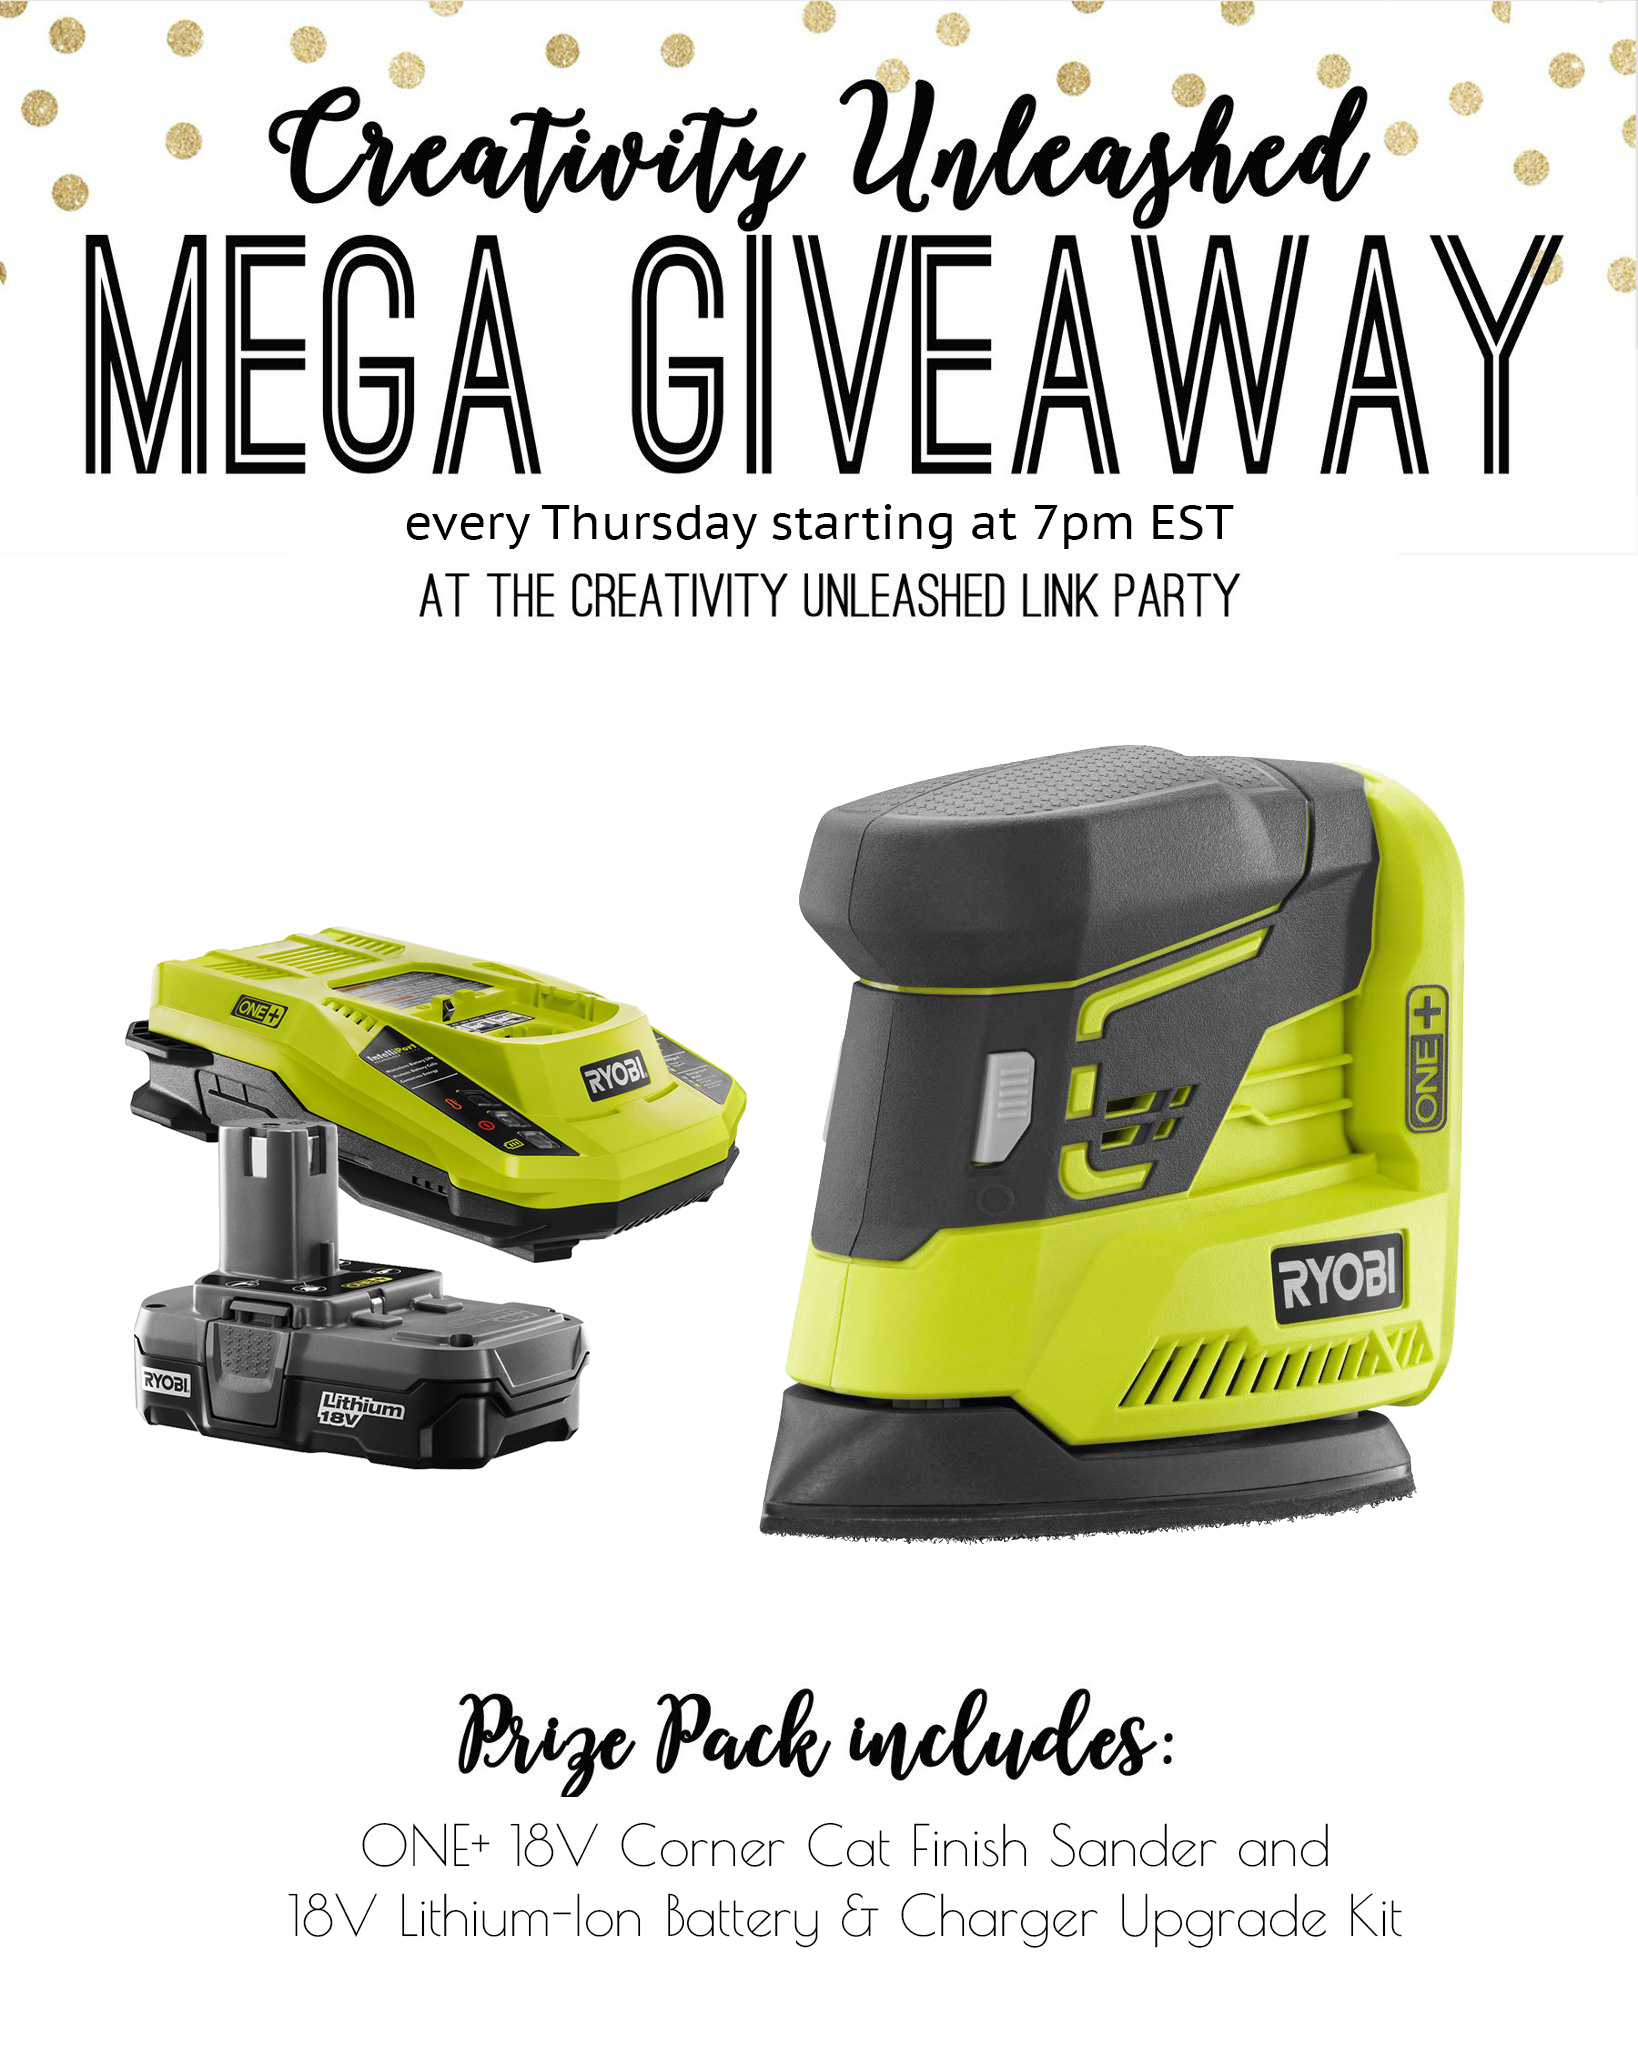 Share your latest projects, browse hundreds of others for inspiration, and enter to win a Ryobi sander at the Creativity Unleashed party!